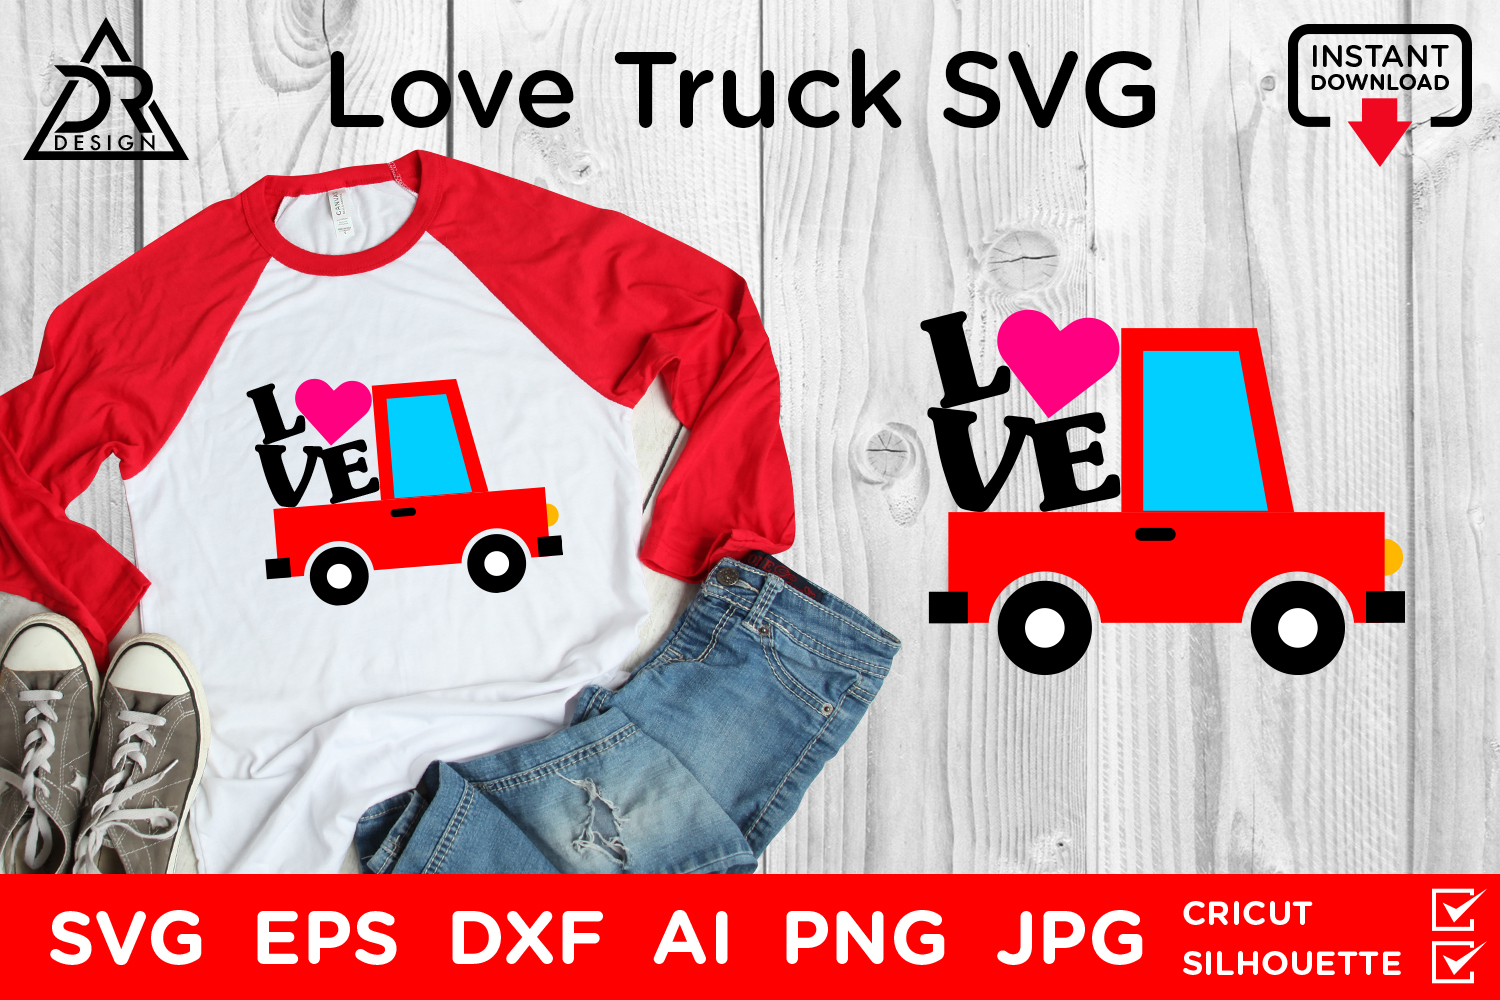 Download Free Love Truck Graphic By Davidrockdesign Creative Fabrica for Cricut Explore, Silhouette and other cutting machines.